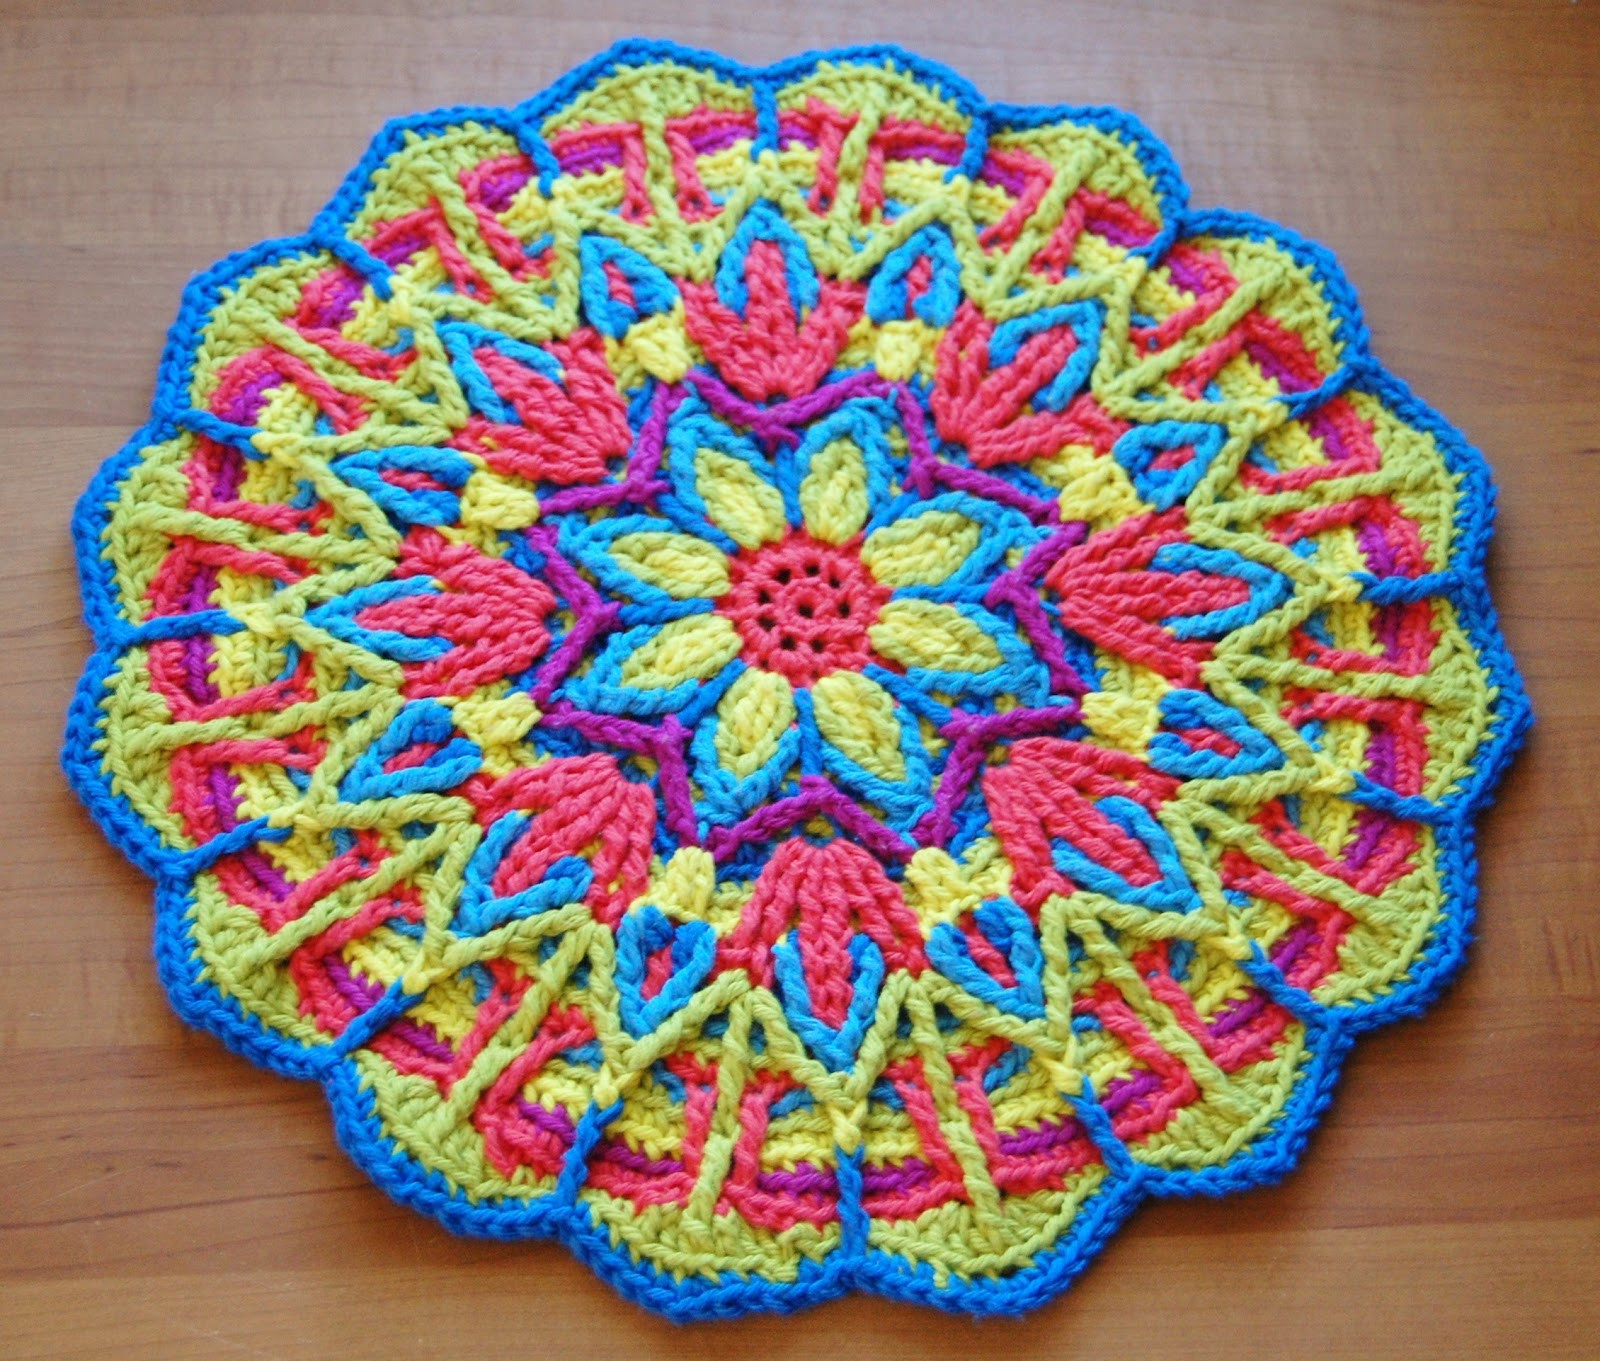 Free Mandala Crochet Patterns New Overlay Crochet Mandala Cal Of Innovative 45 Models Free Mandala Crochet Patterns